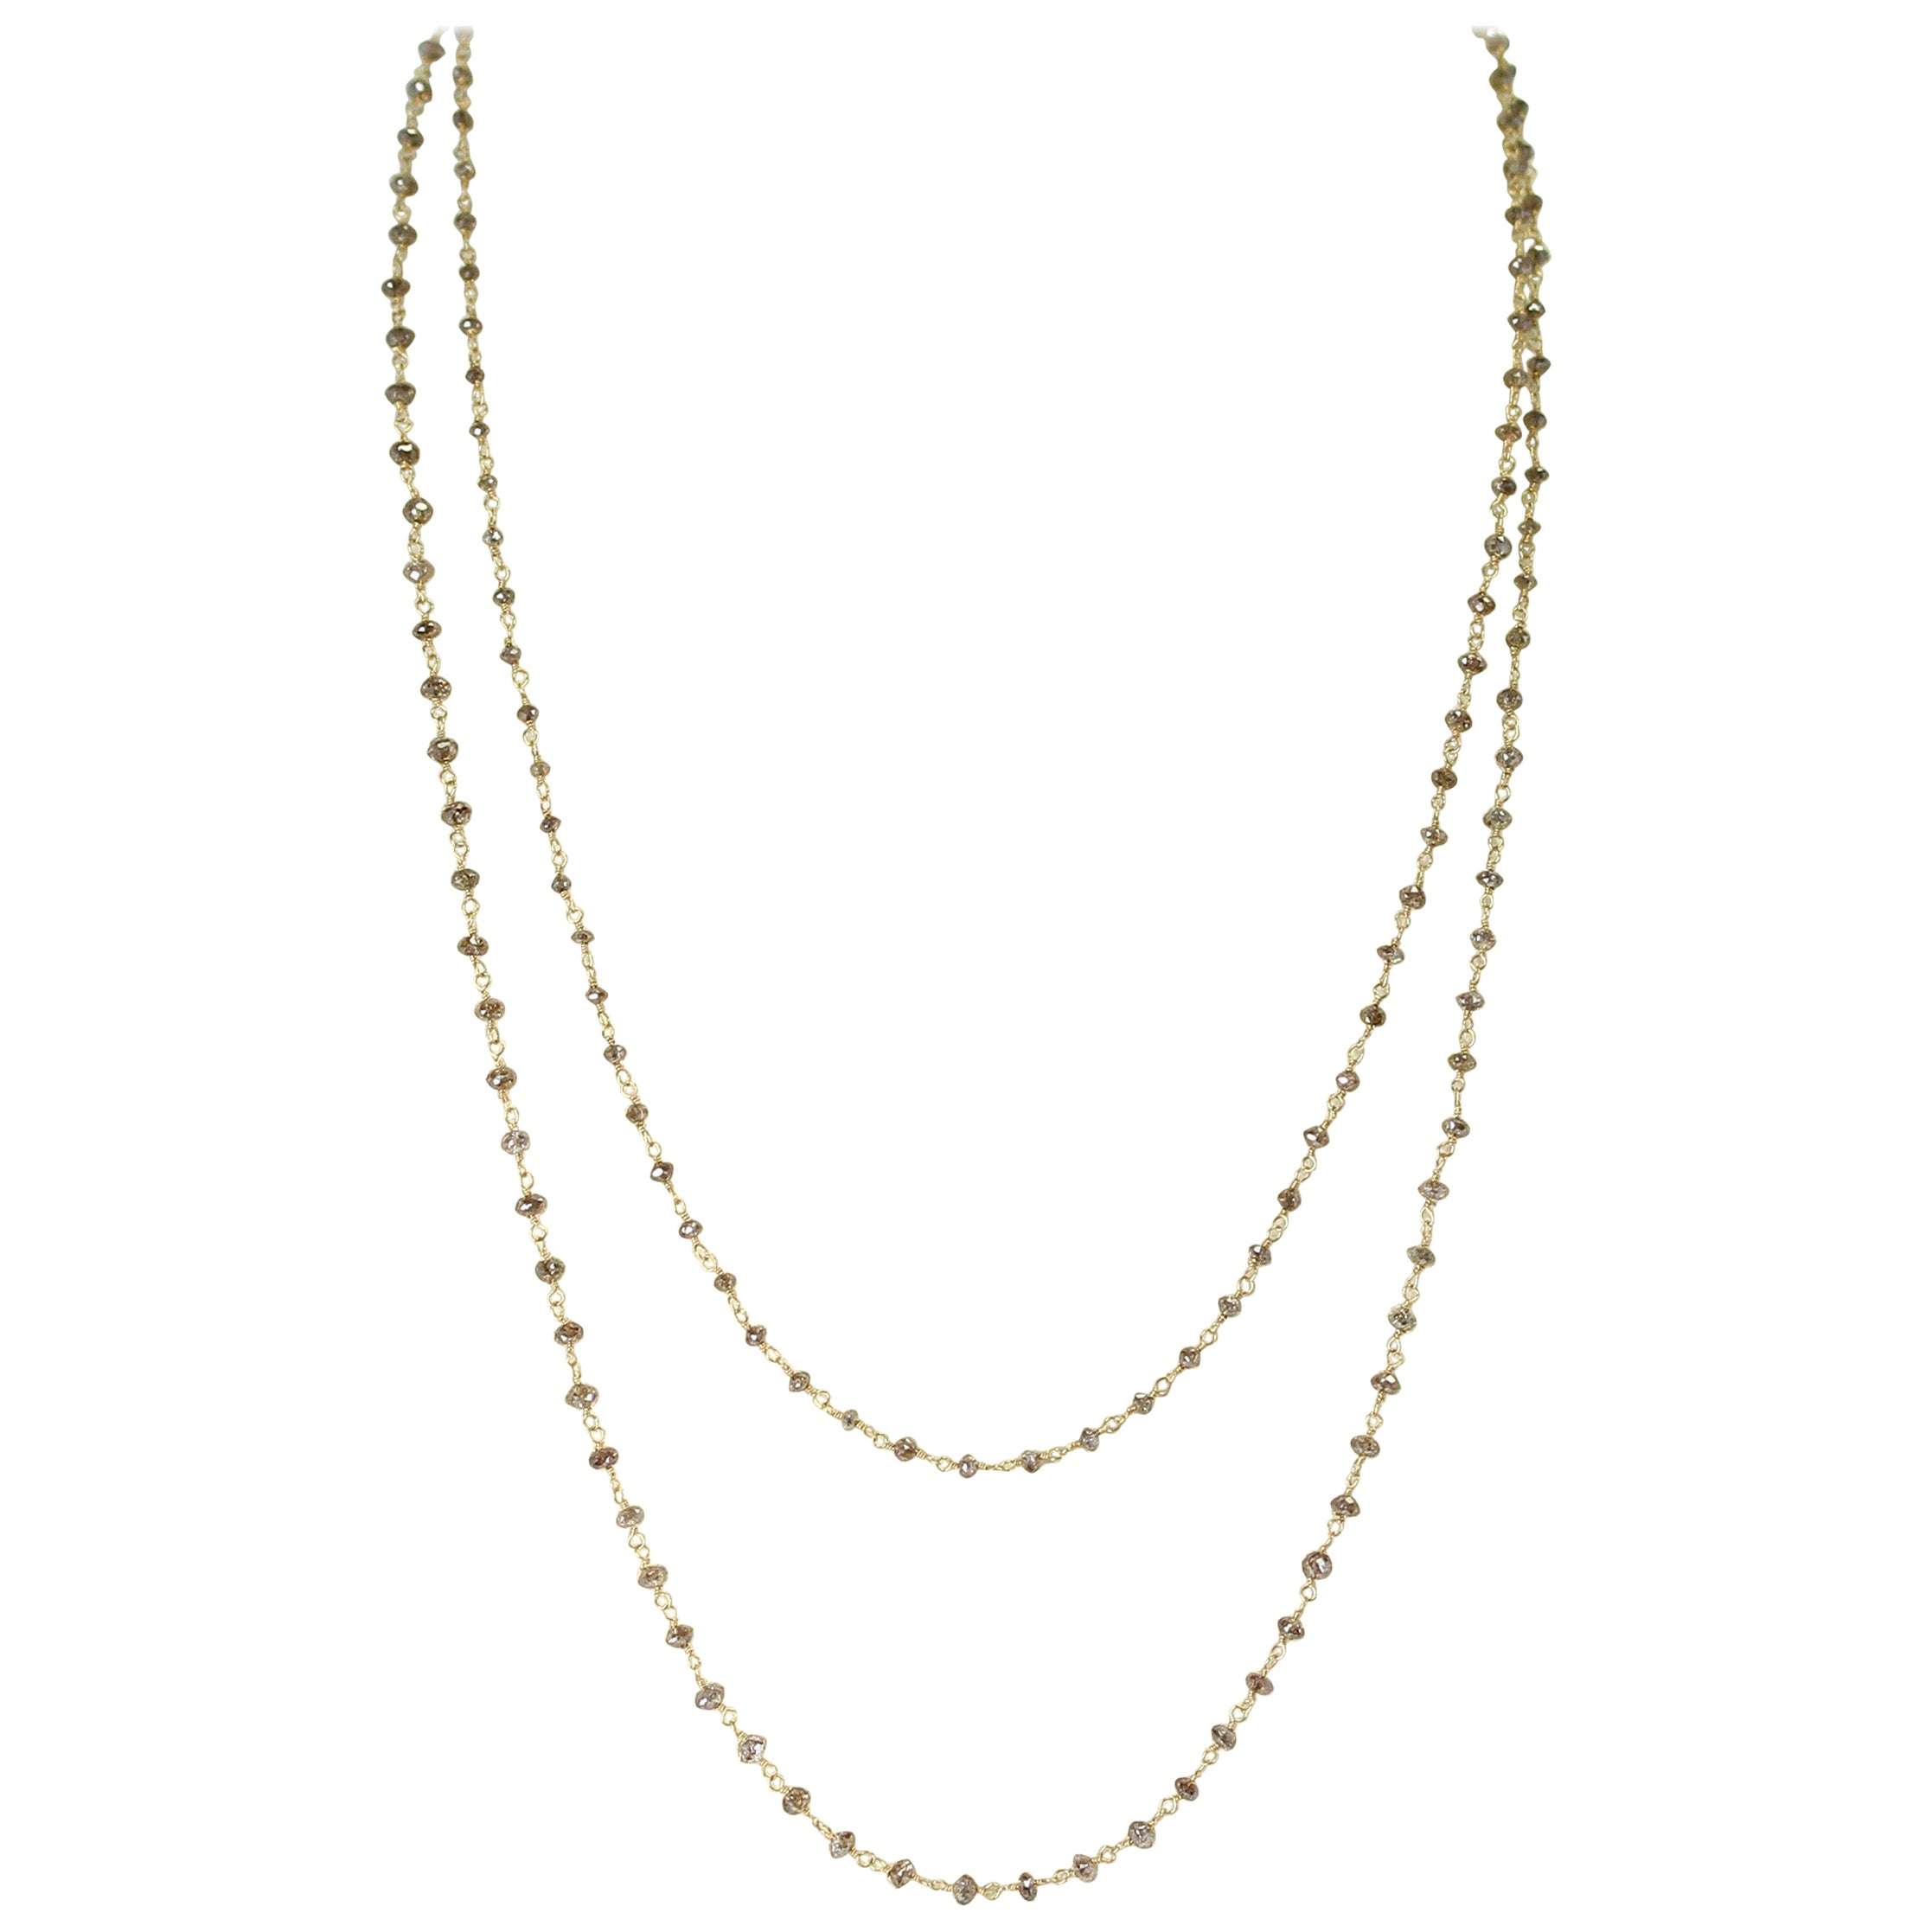 Genuine Champagne Diamond Beads Wire-Wrapped Necklace, 18 Karat Yellow